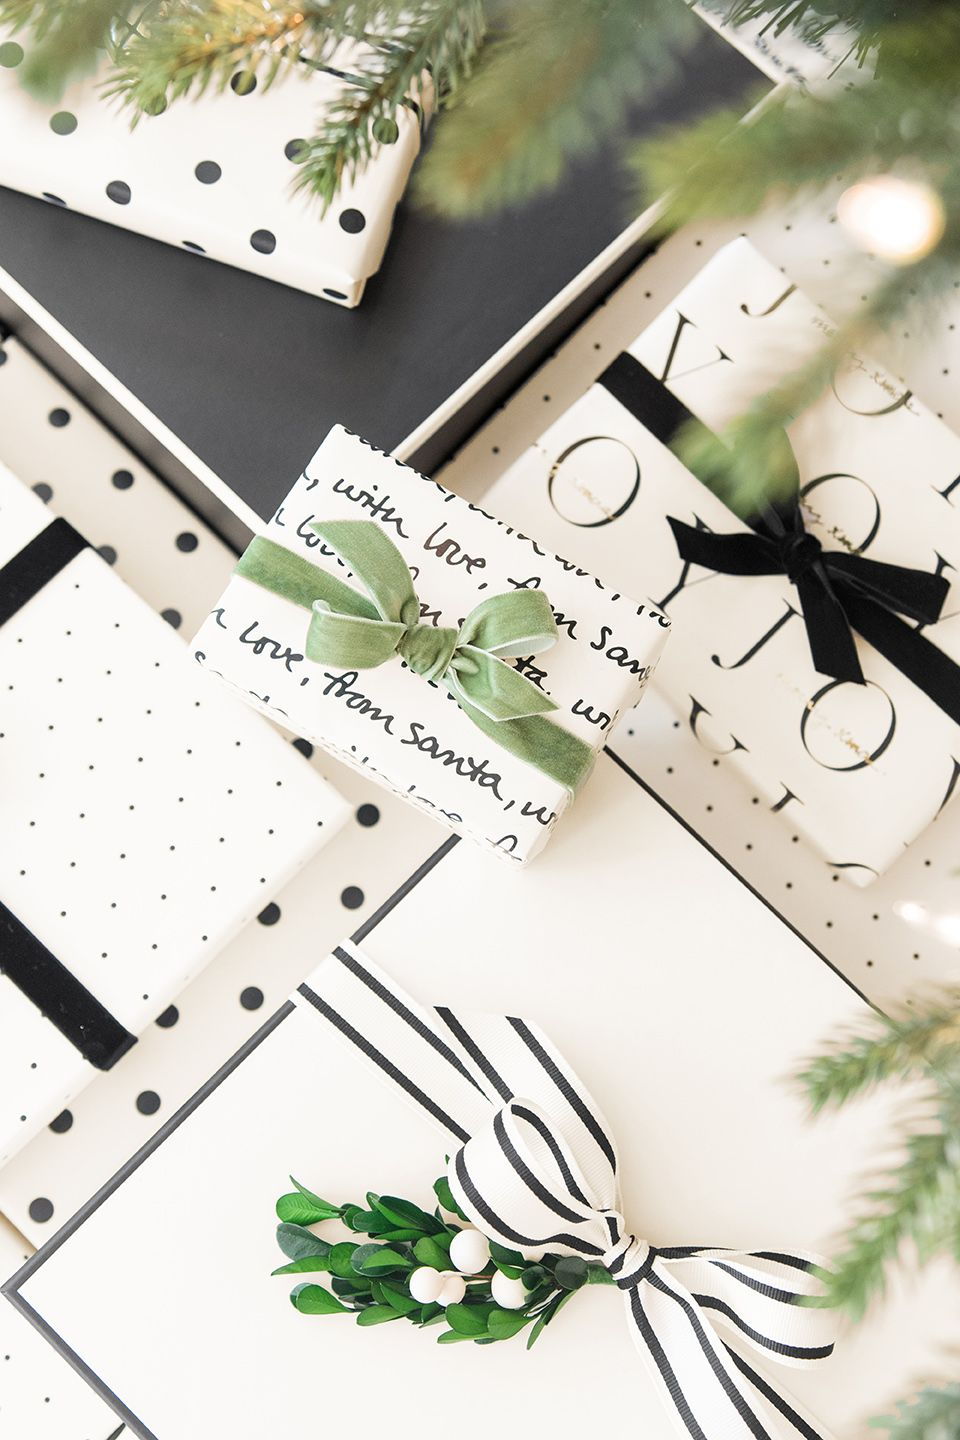 Sugar Paper X Target Holiday Sneak Peek Target Christmas Gift Wrapping Inspiration Christmas Wrapping Paper